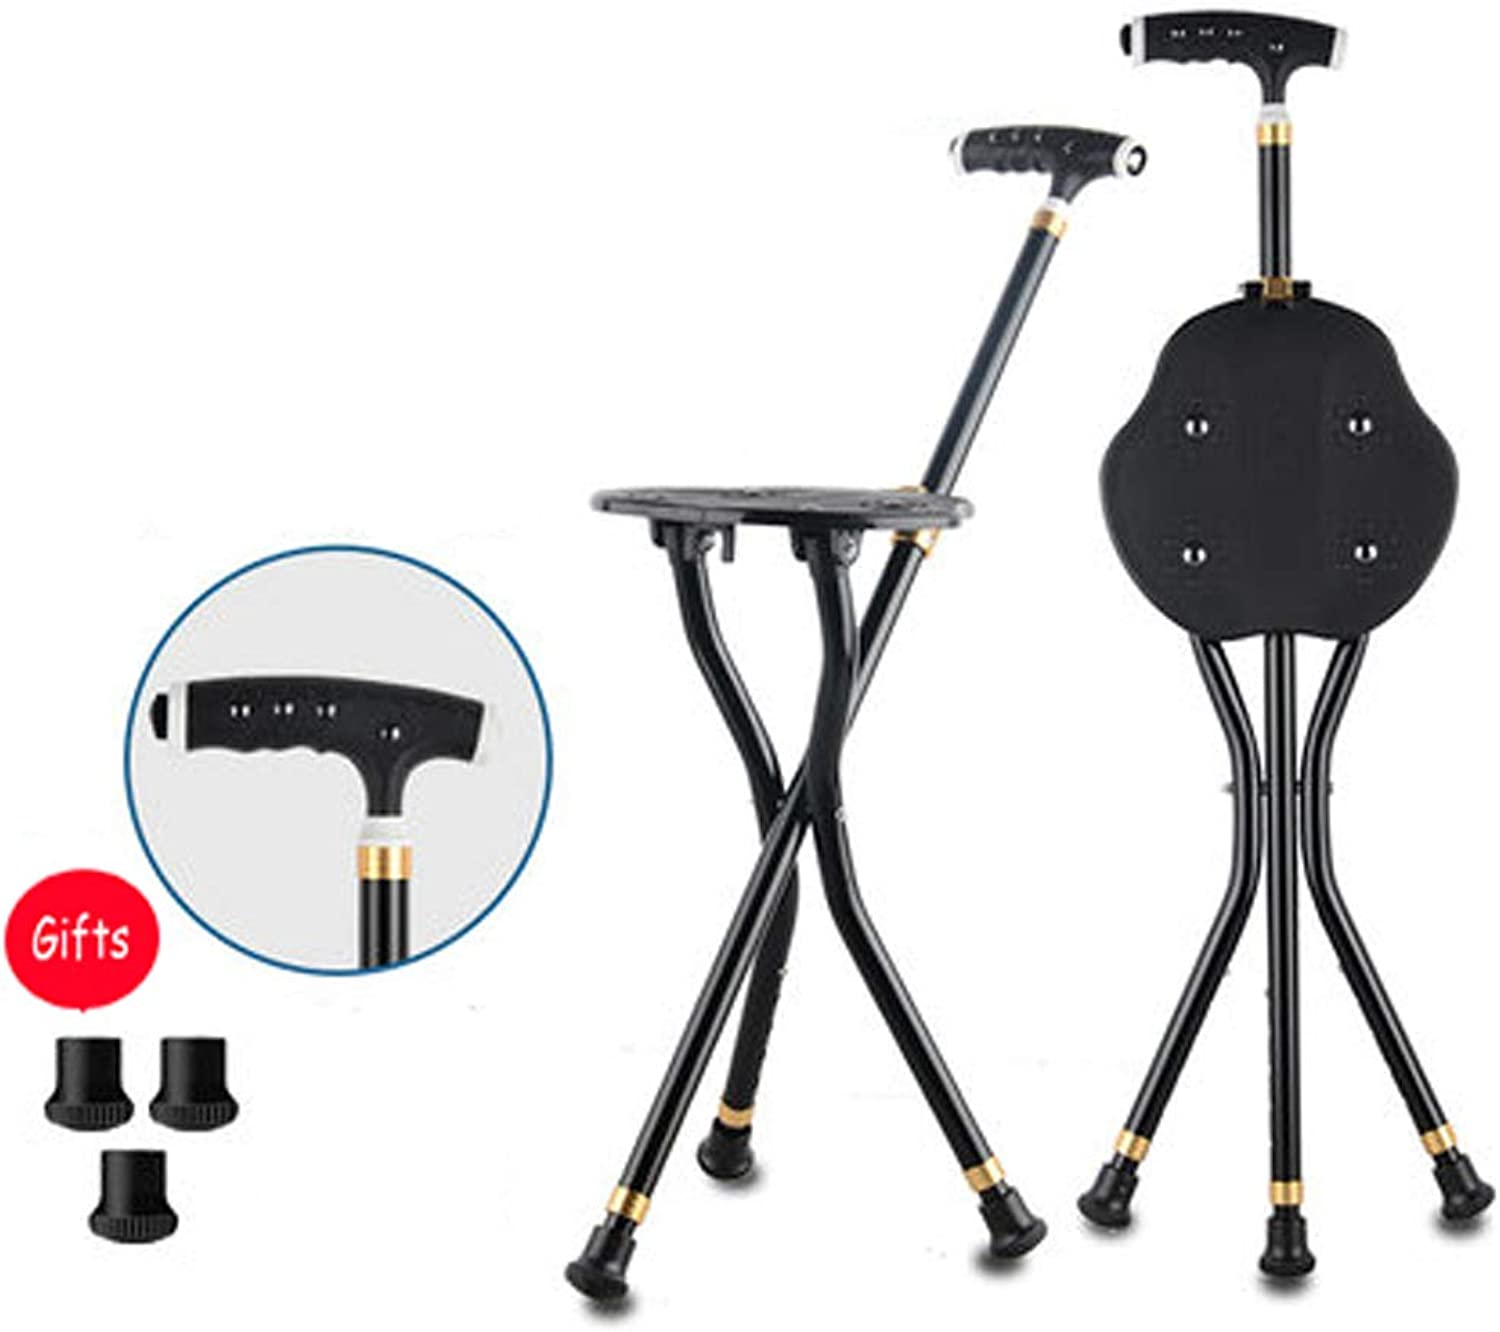 Cane Stool, 3 Legs Cane Seats, Crutch Chair Seat, 3 Legs Cane Seats, Walking Stick Chair Combo, Folding Walking Cane, with LED Light Lightweight and Adjustable, Multiple Choices,8Magnets